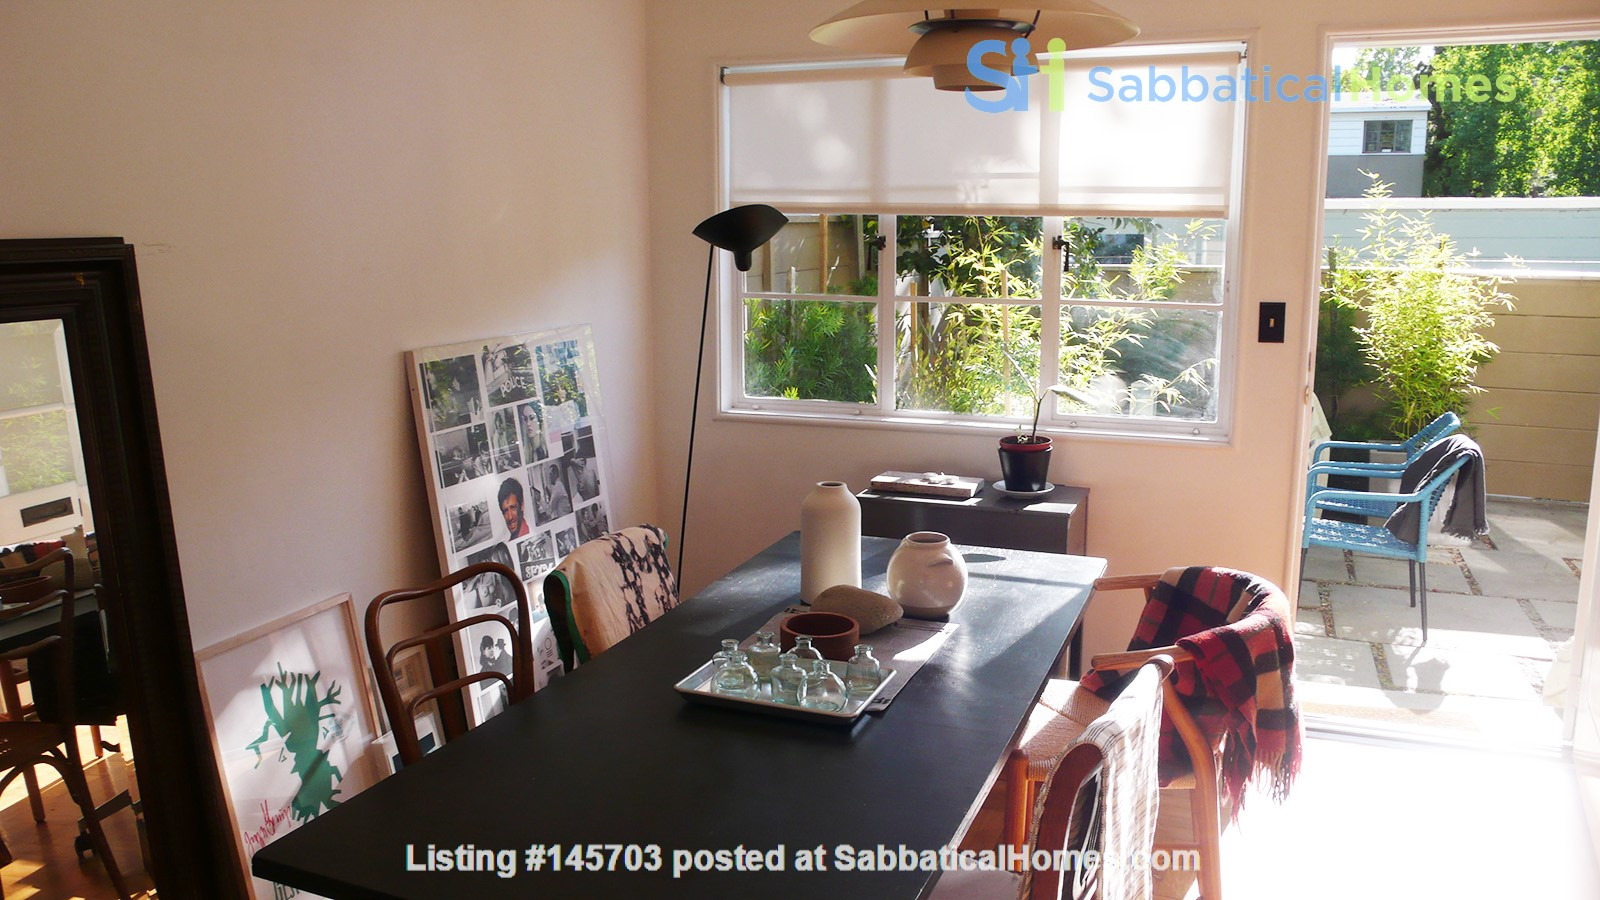 Light-filled 2BR townhouse with large patio in urban oasis in Los Angeles Home Rental in Los Angeles, California, United States 1